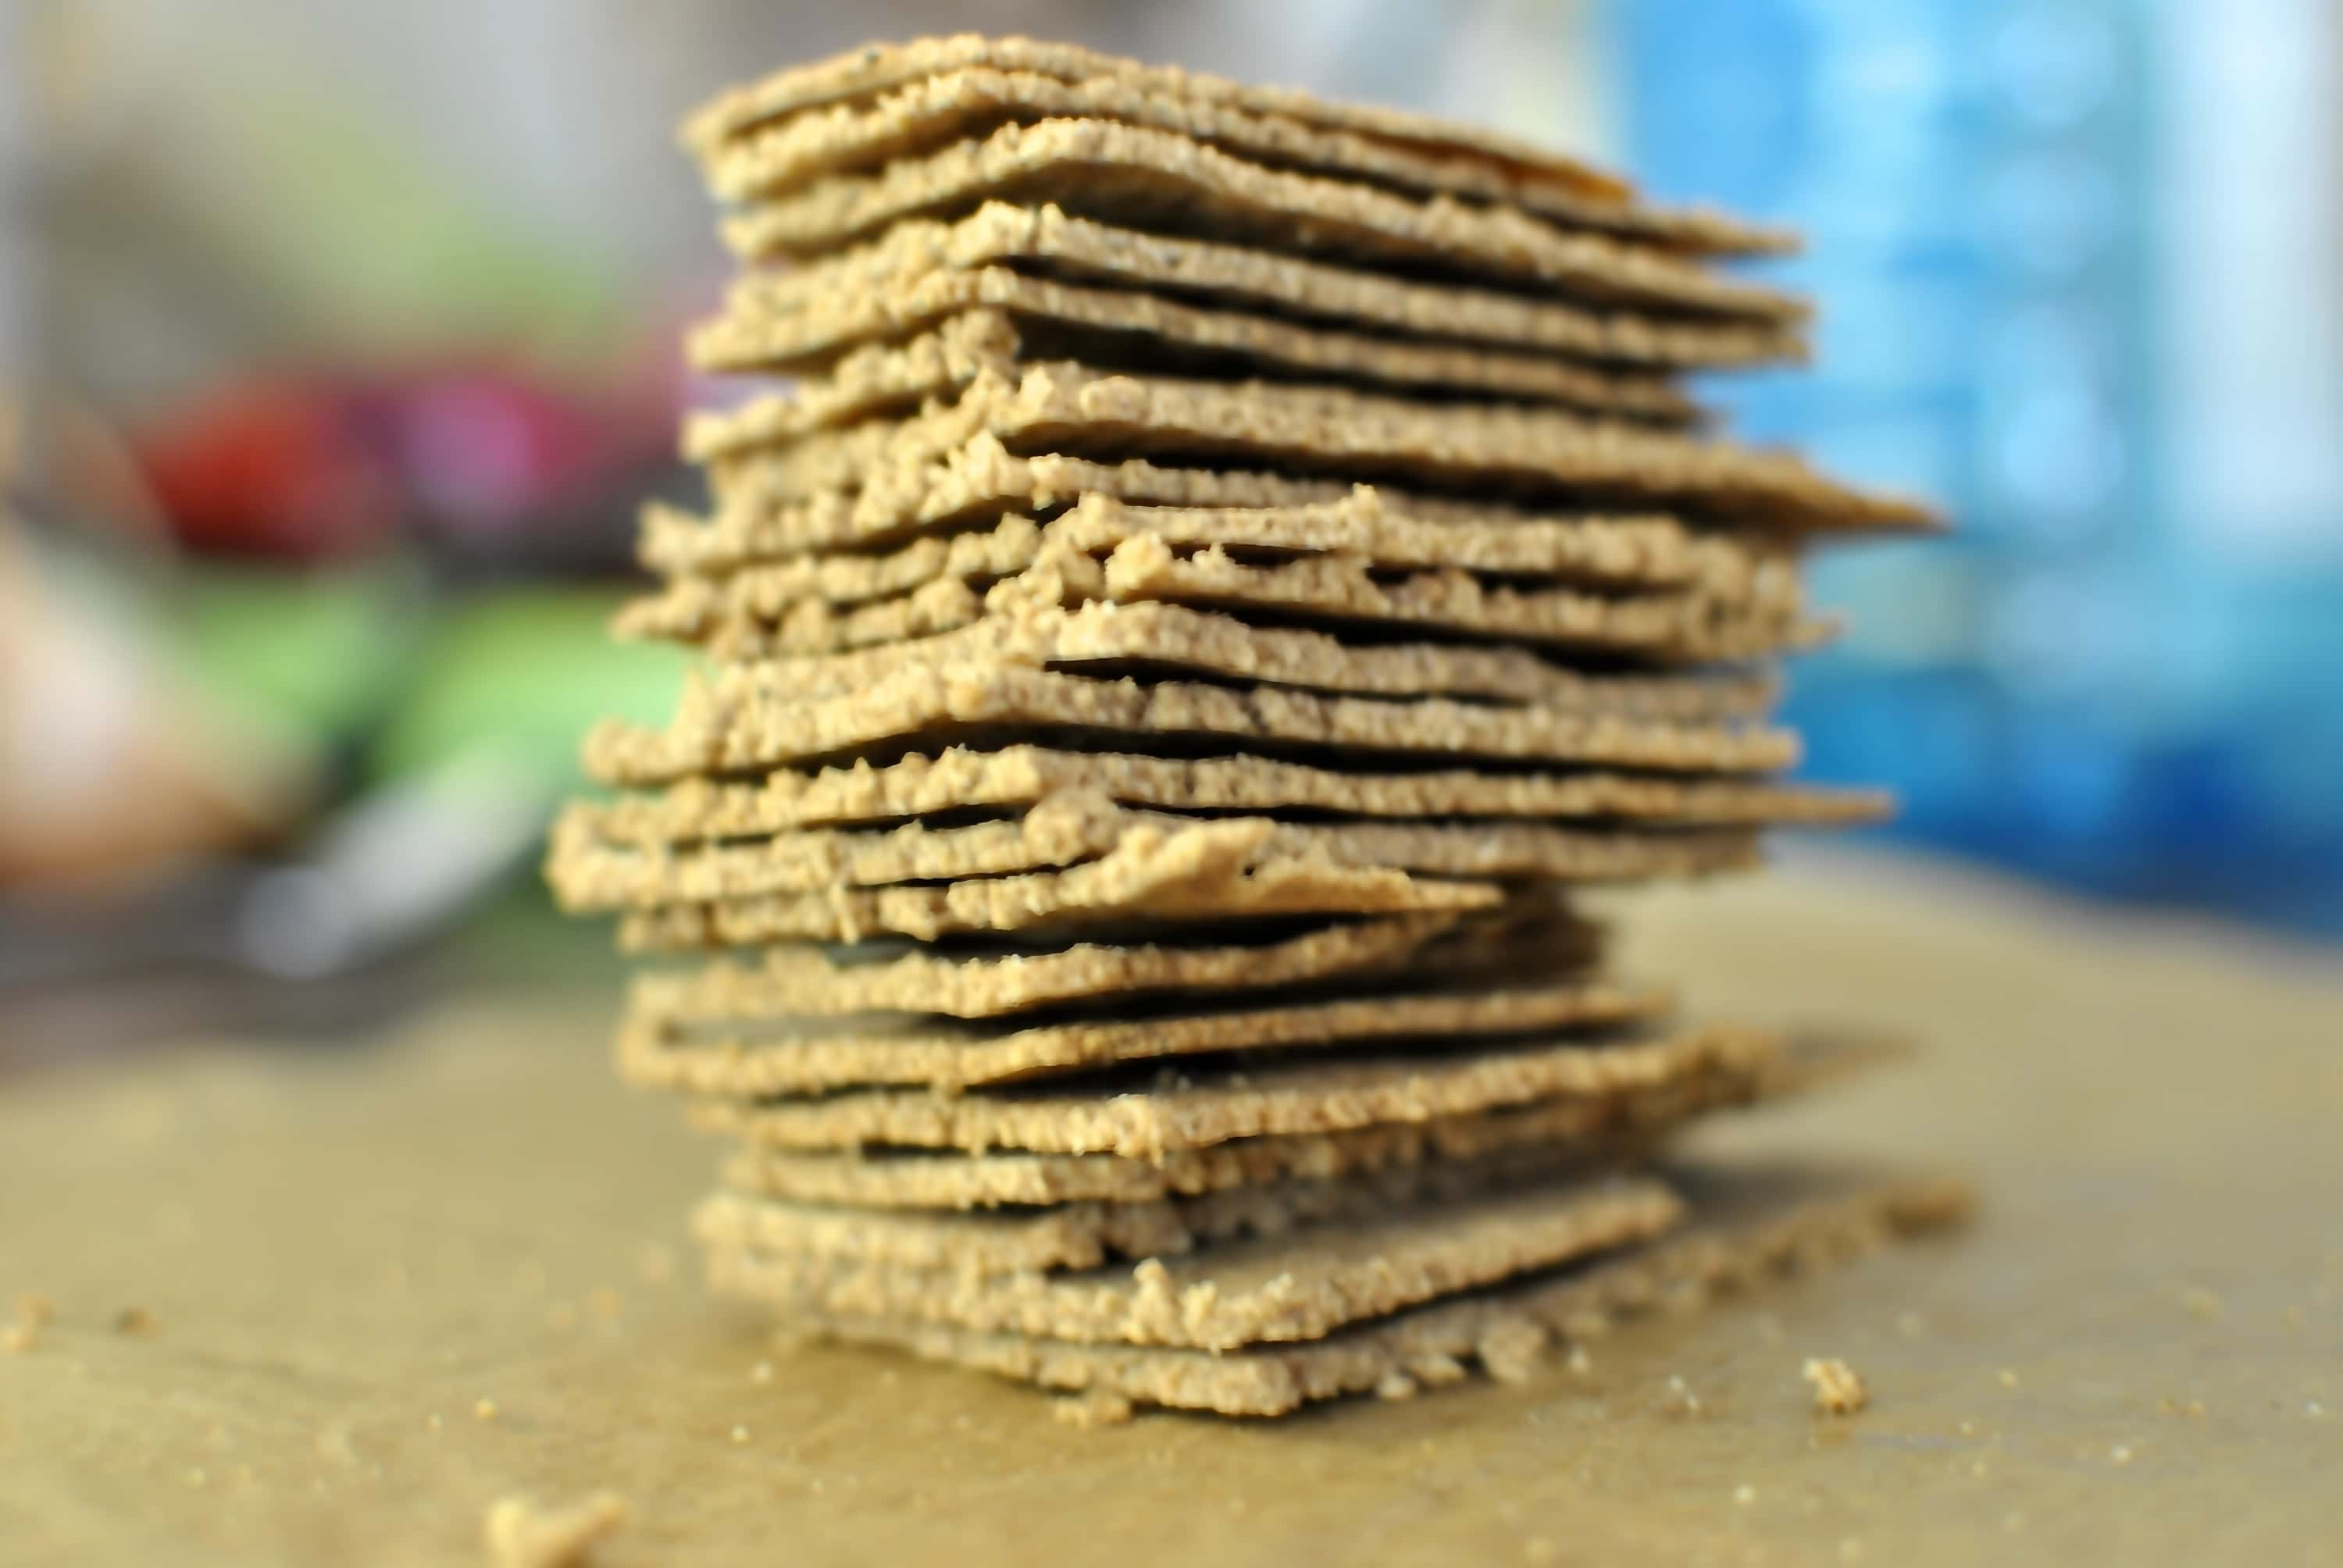 Recipe: Anti-Candida diet: crackers